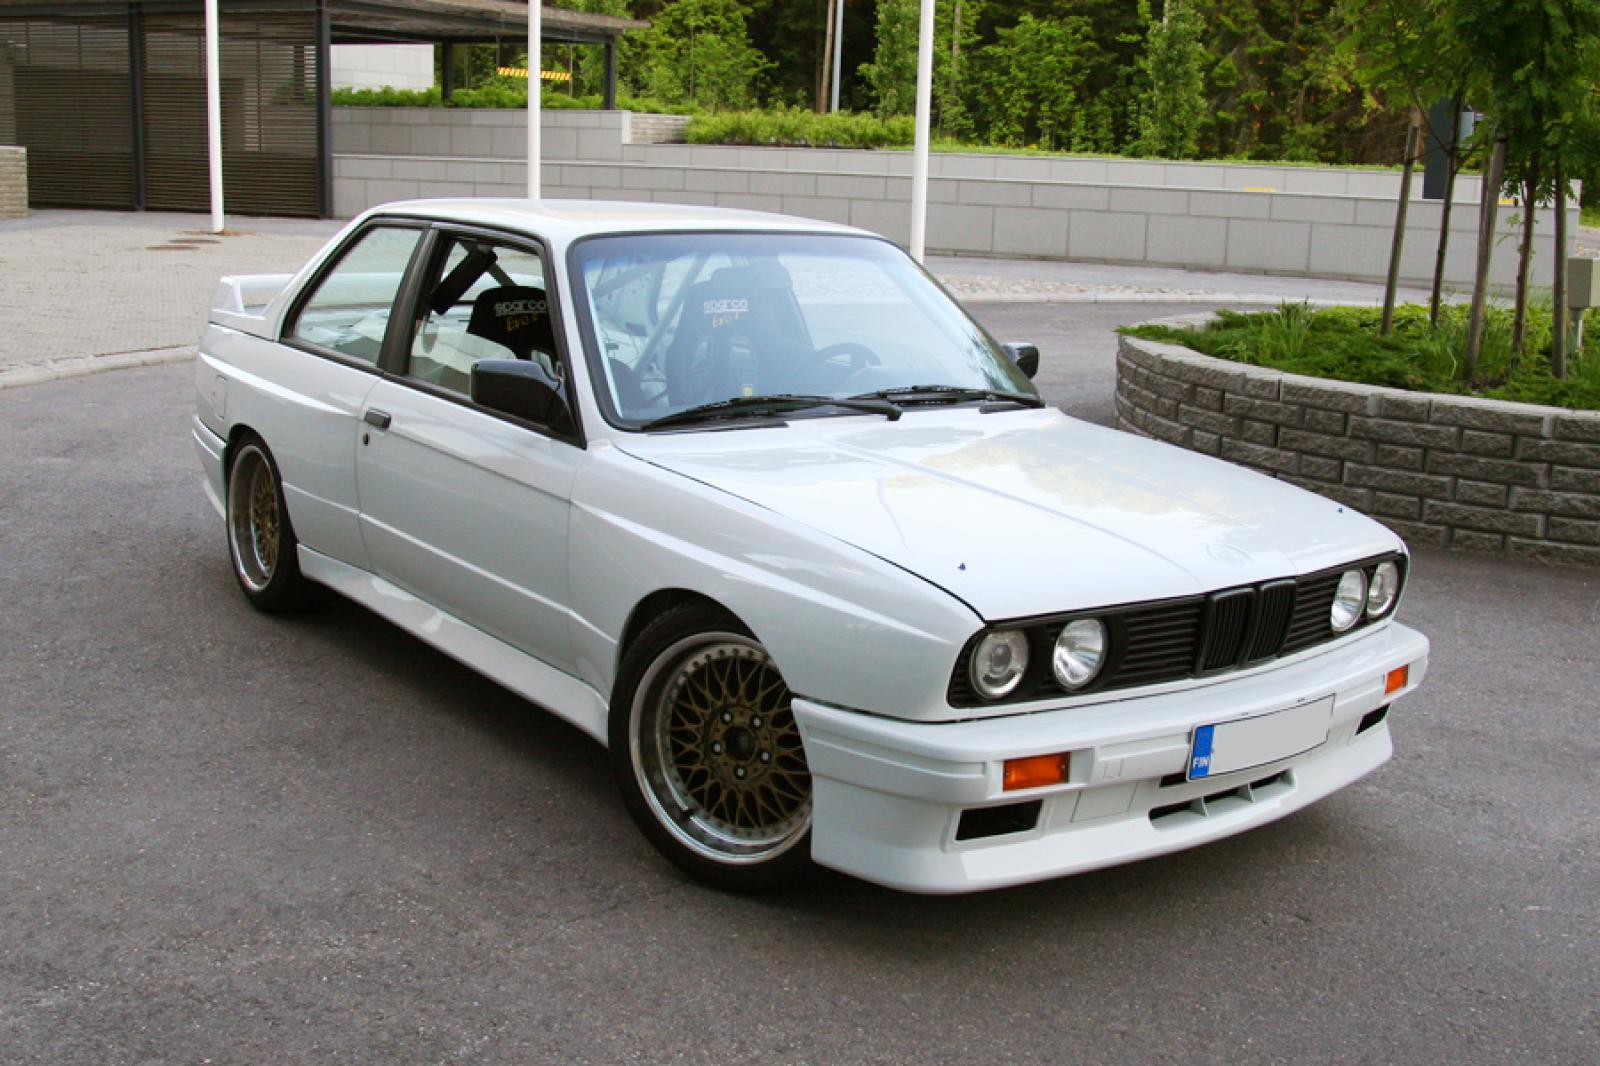 hight resolution of 800 1024 1280 1600 origin 1991 bmw